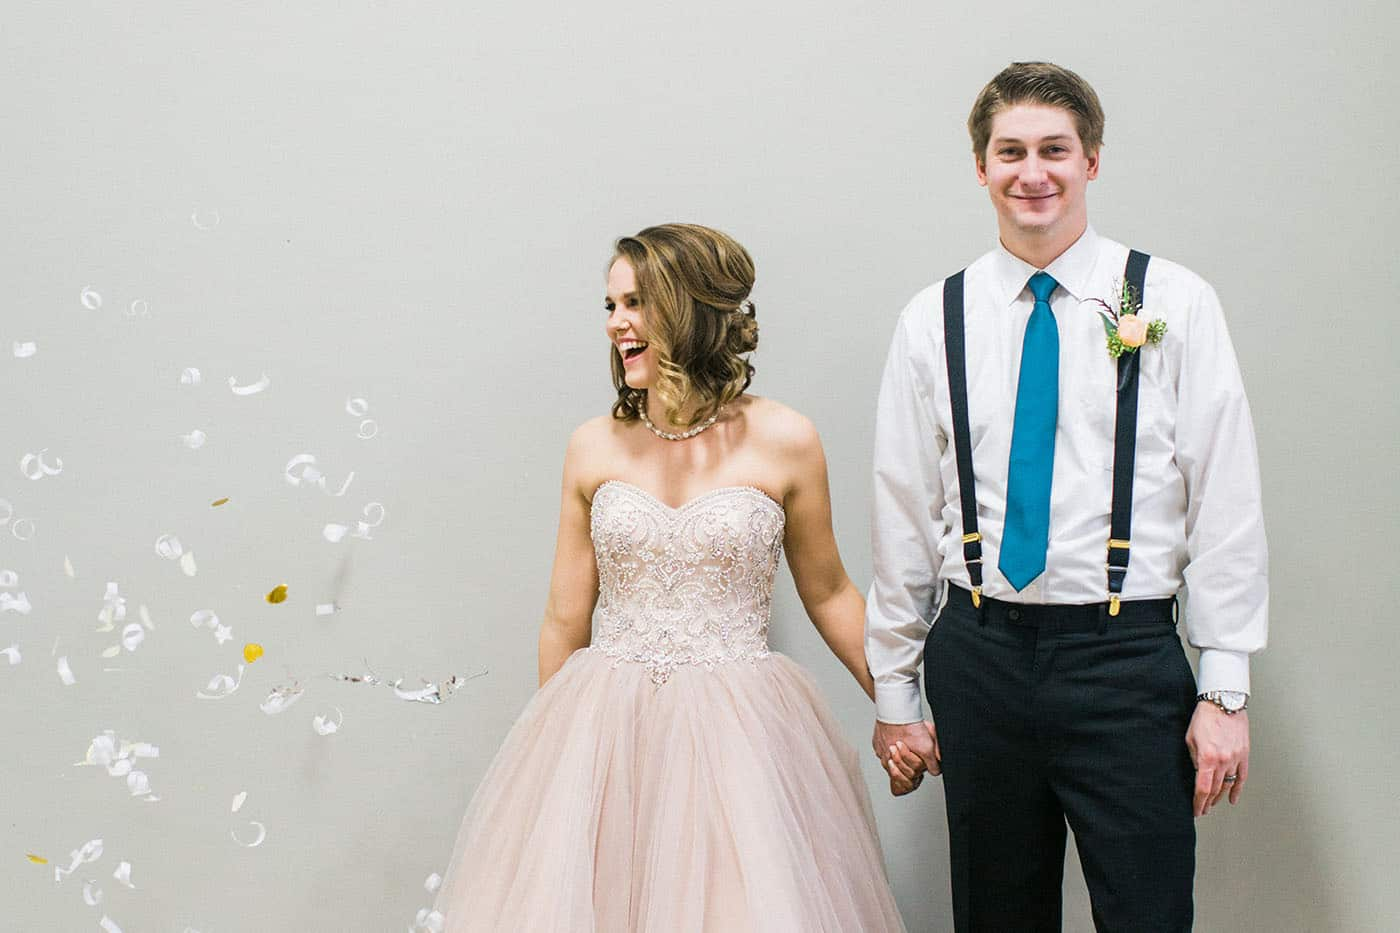 laughing bride and groom under confetti rachael osborn client questions